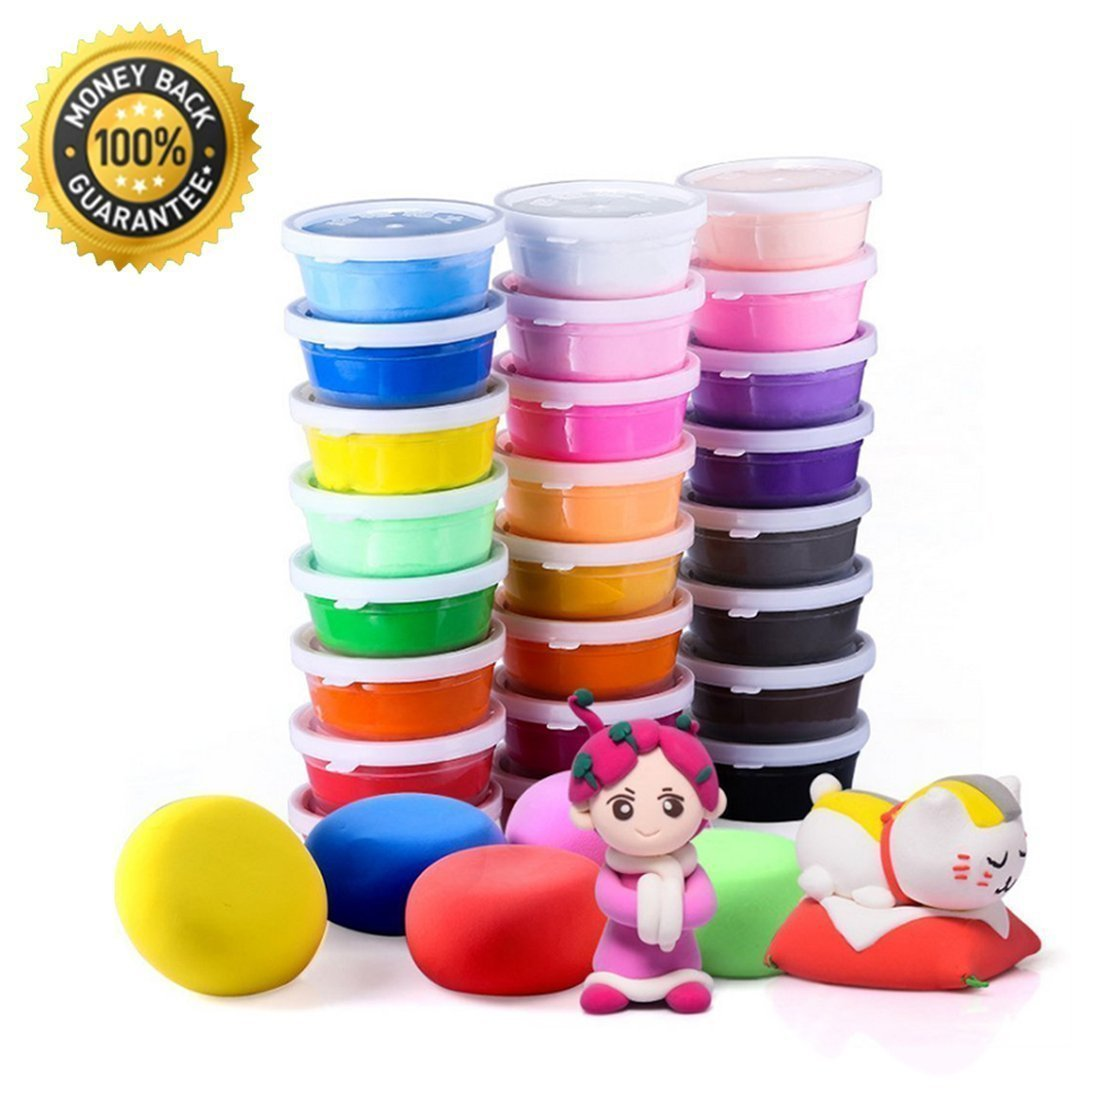 Air Dry Clay, 24 Colors Ultra Light Modeling Clay, Rubikliss Magic Clay DIY Creative Modeling Dough with Project Booklet